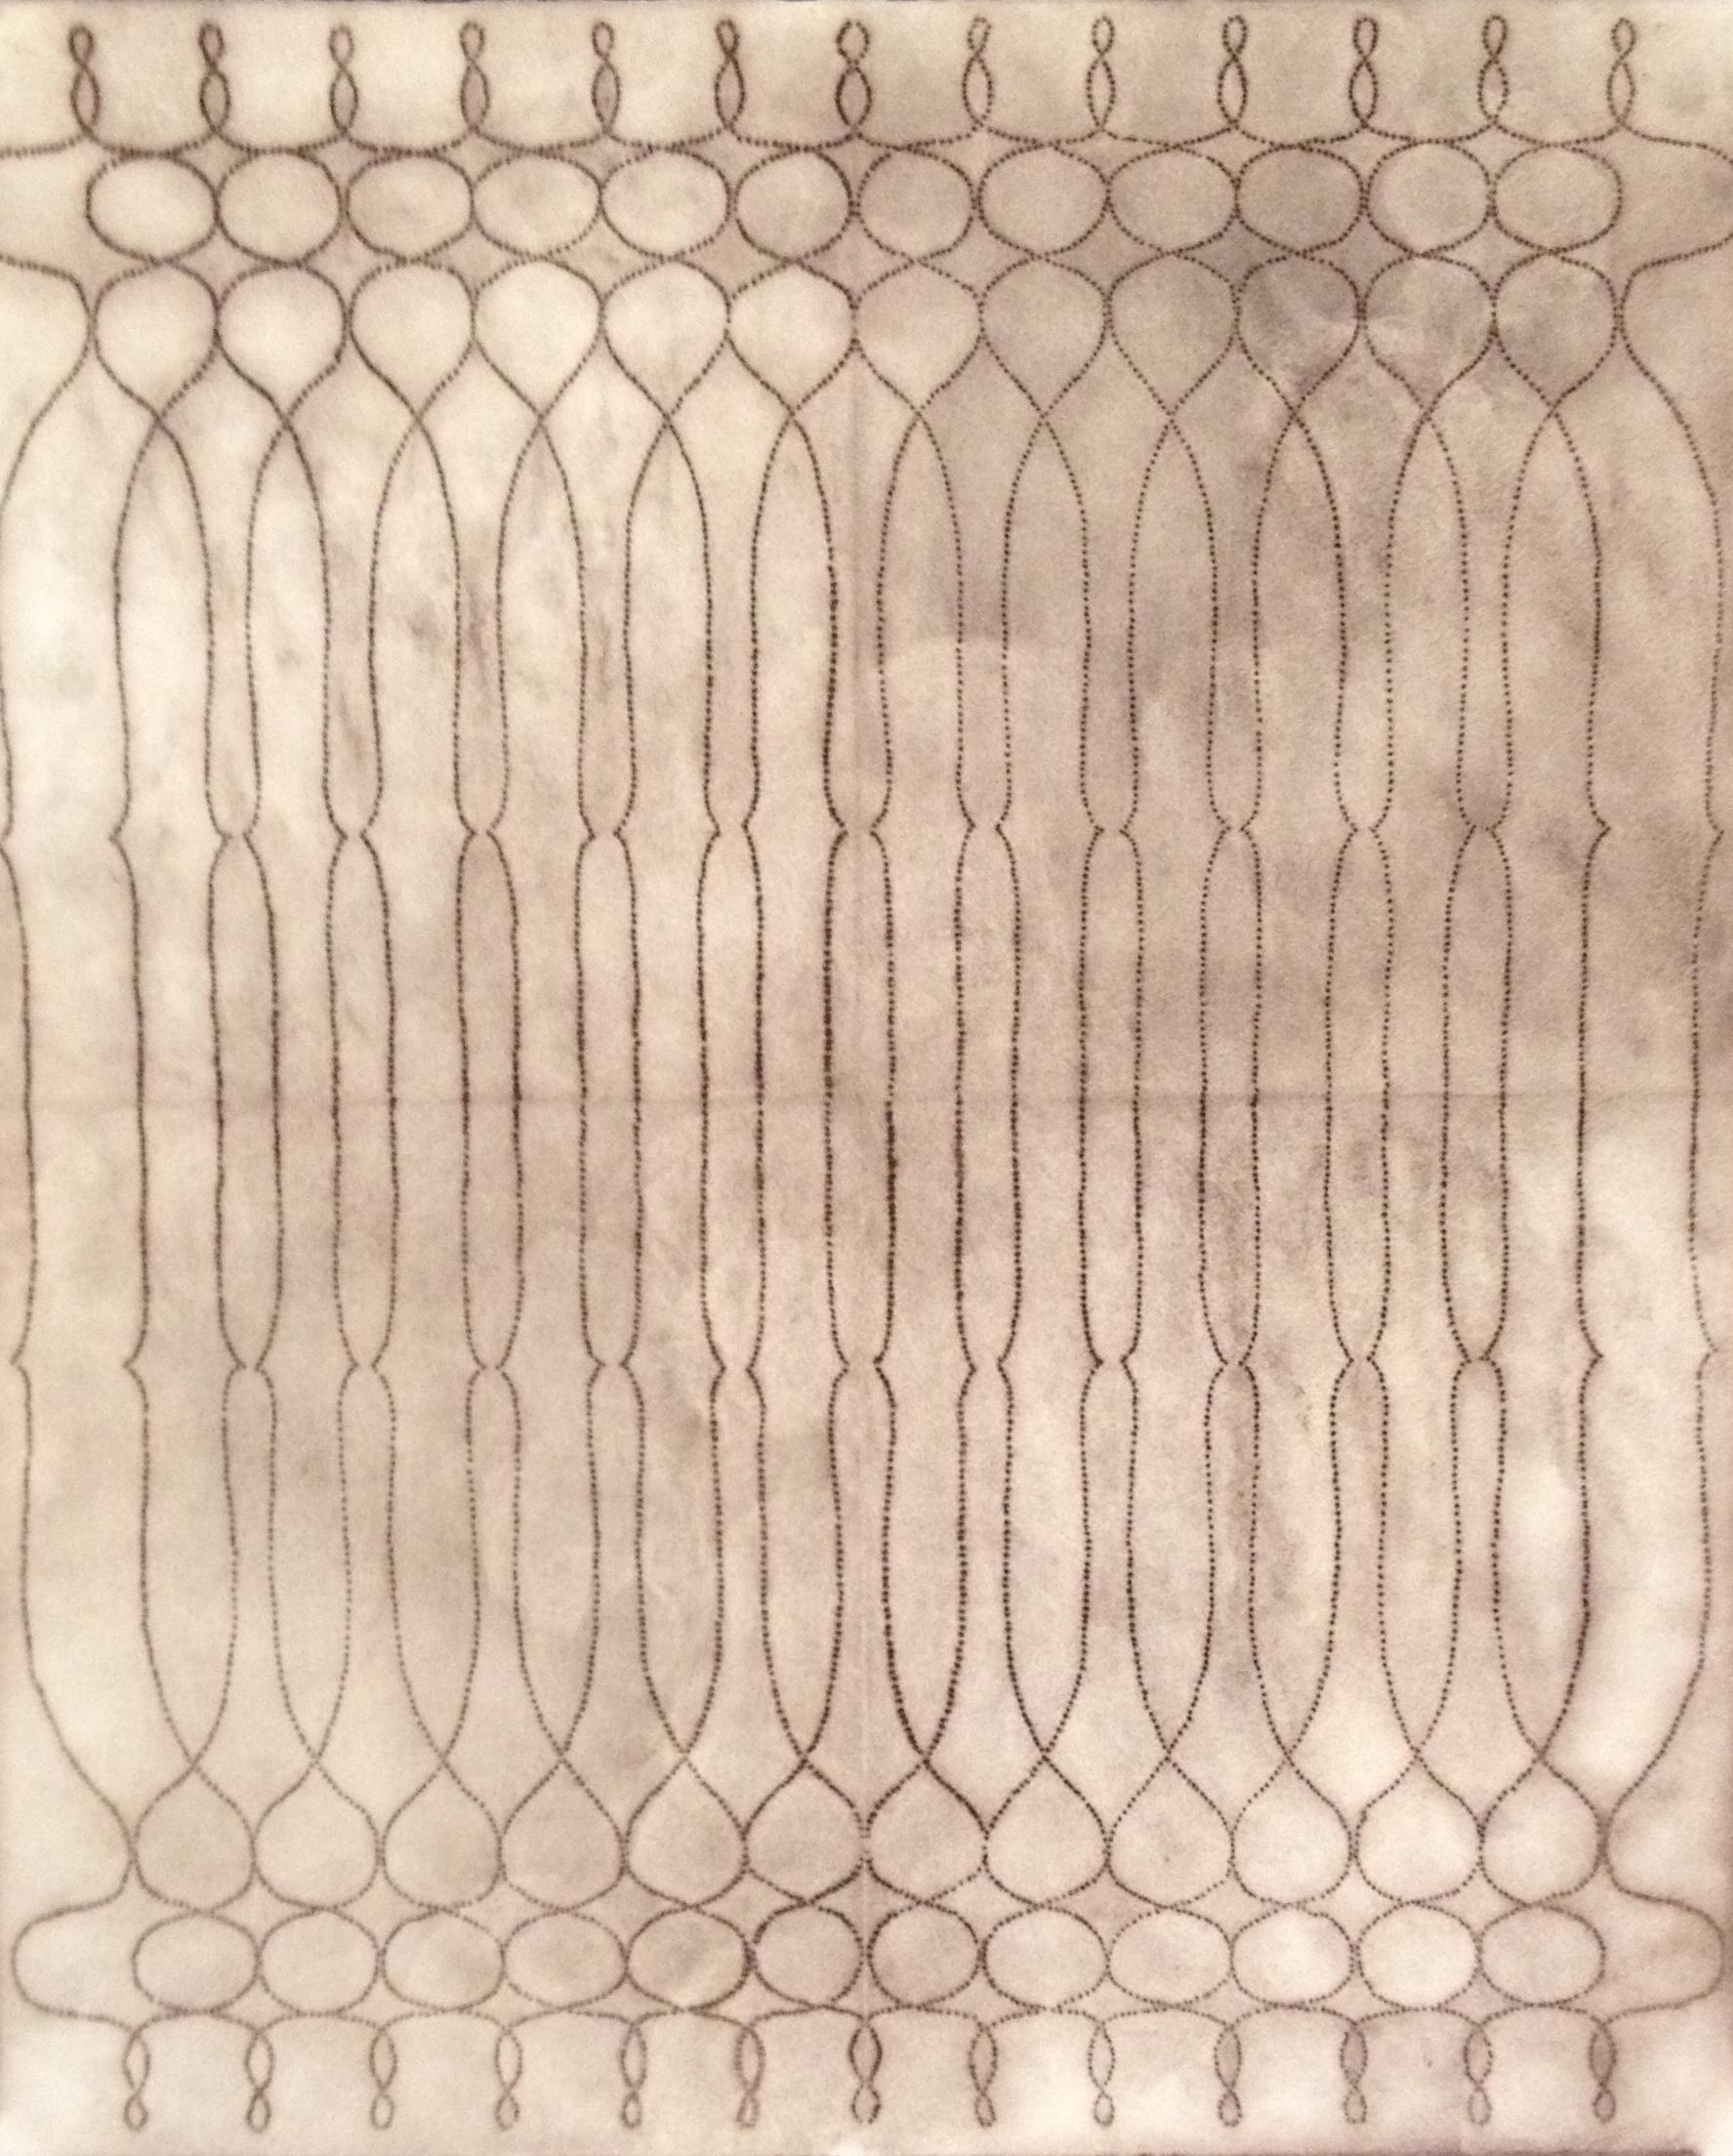 Andalusian Series No. M12, Reddish Brown Layered Line Drawing on Paper